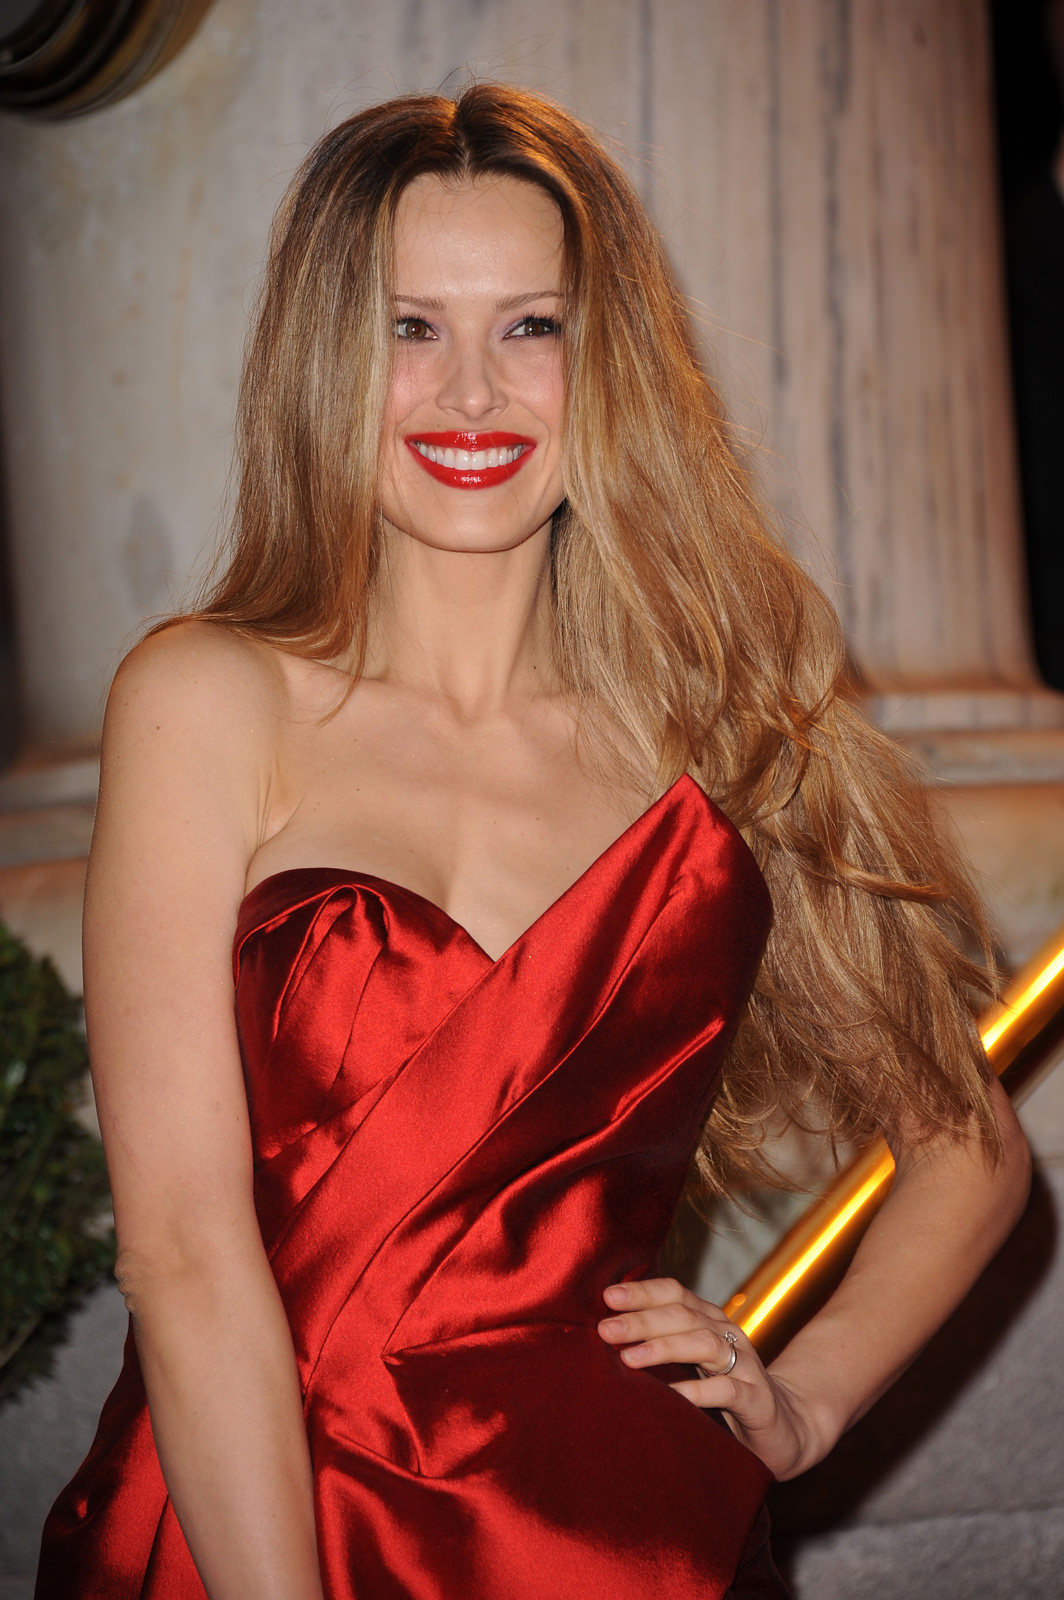 Petra Nemcova Photo Gallery